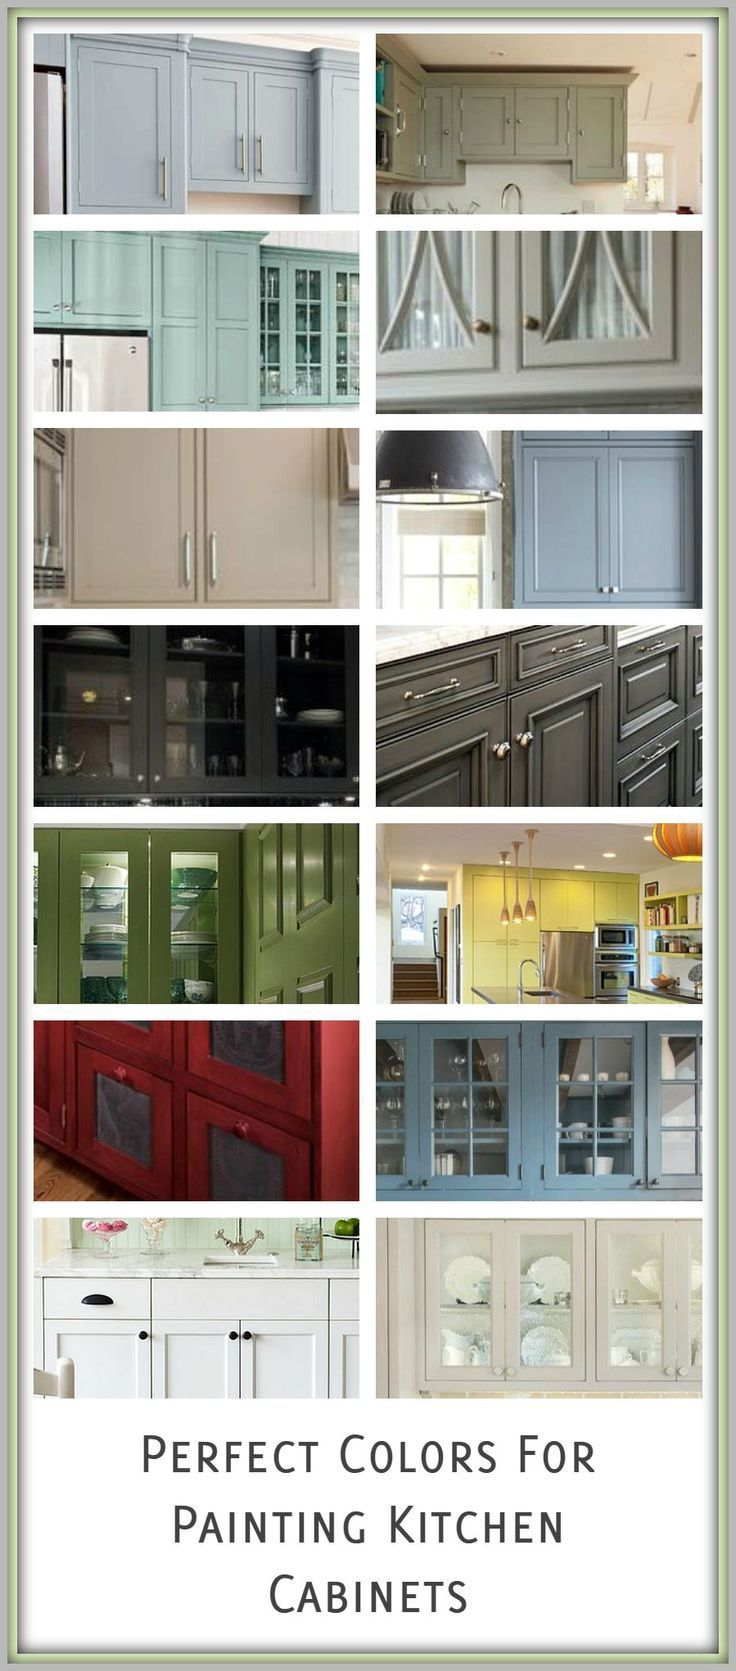 Great Colors For Painting Kitchen Cabinets Kitchen Cabinet Colors Painting Kitchen Cabinets Kitchen Cabinets